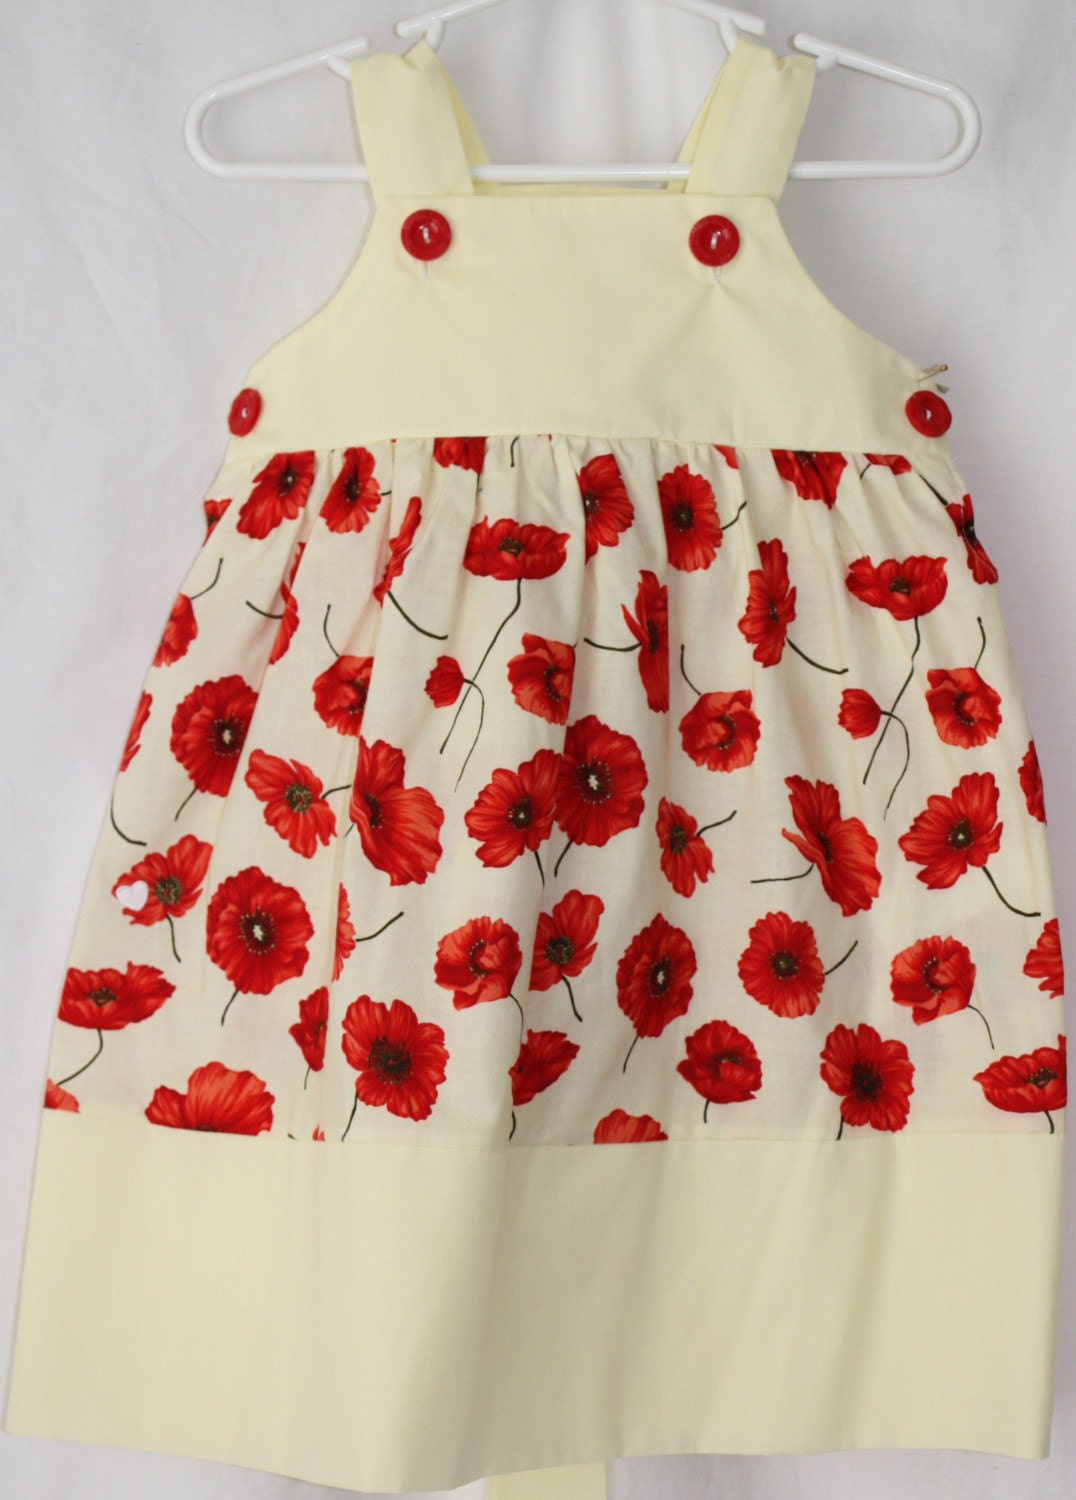 Red and yellow poppy dress, 4T